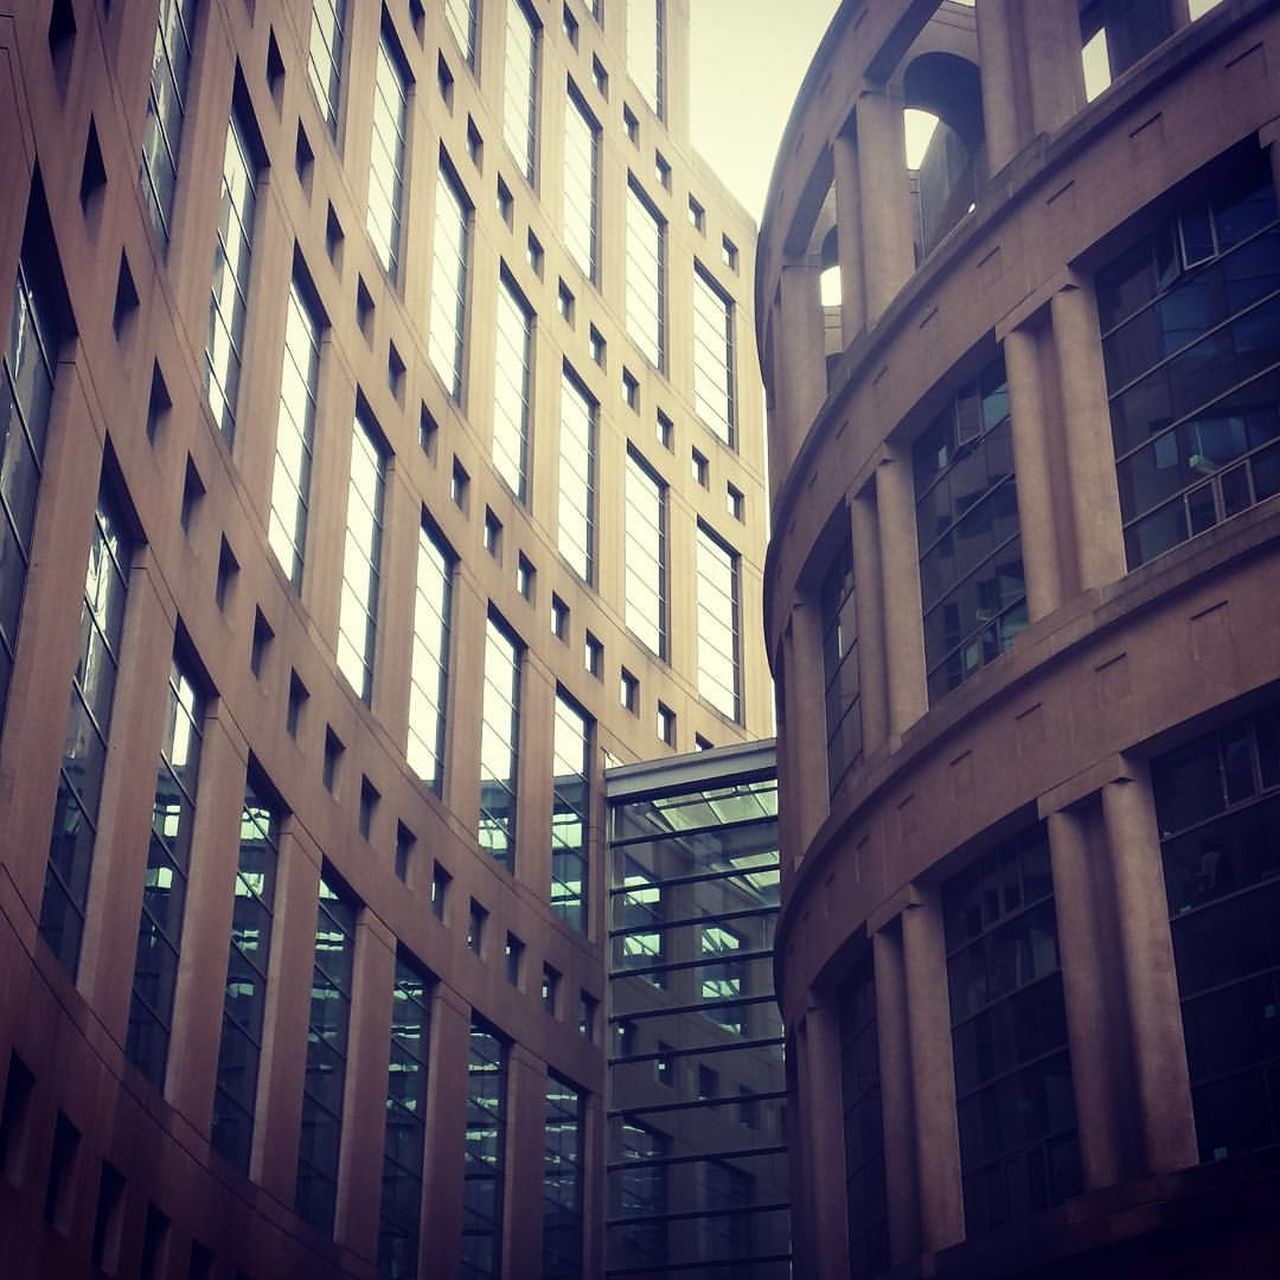 One of my favorite buildings Architecture Built Structure Building Exterior Window No People Low Angle View City Outdoors Day Vancouver Vancouver BC Vancitybuzz